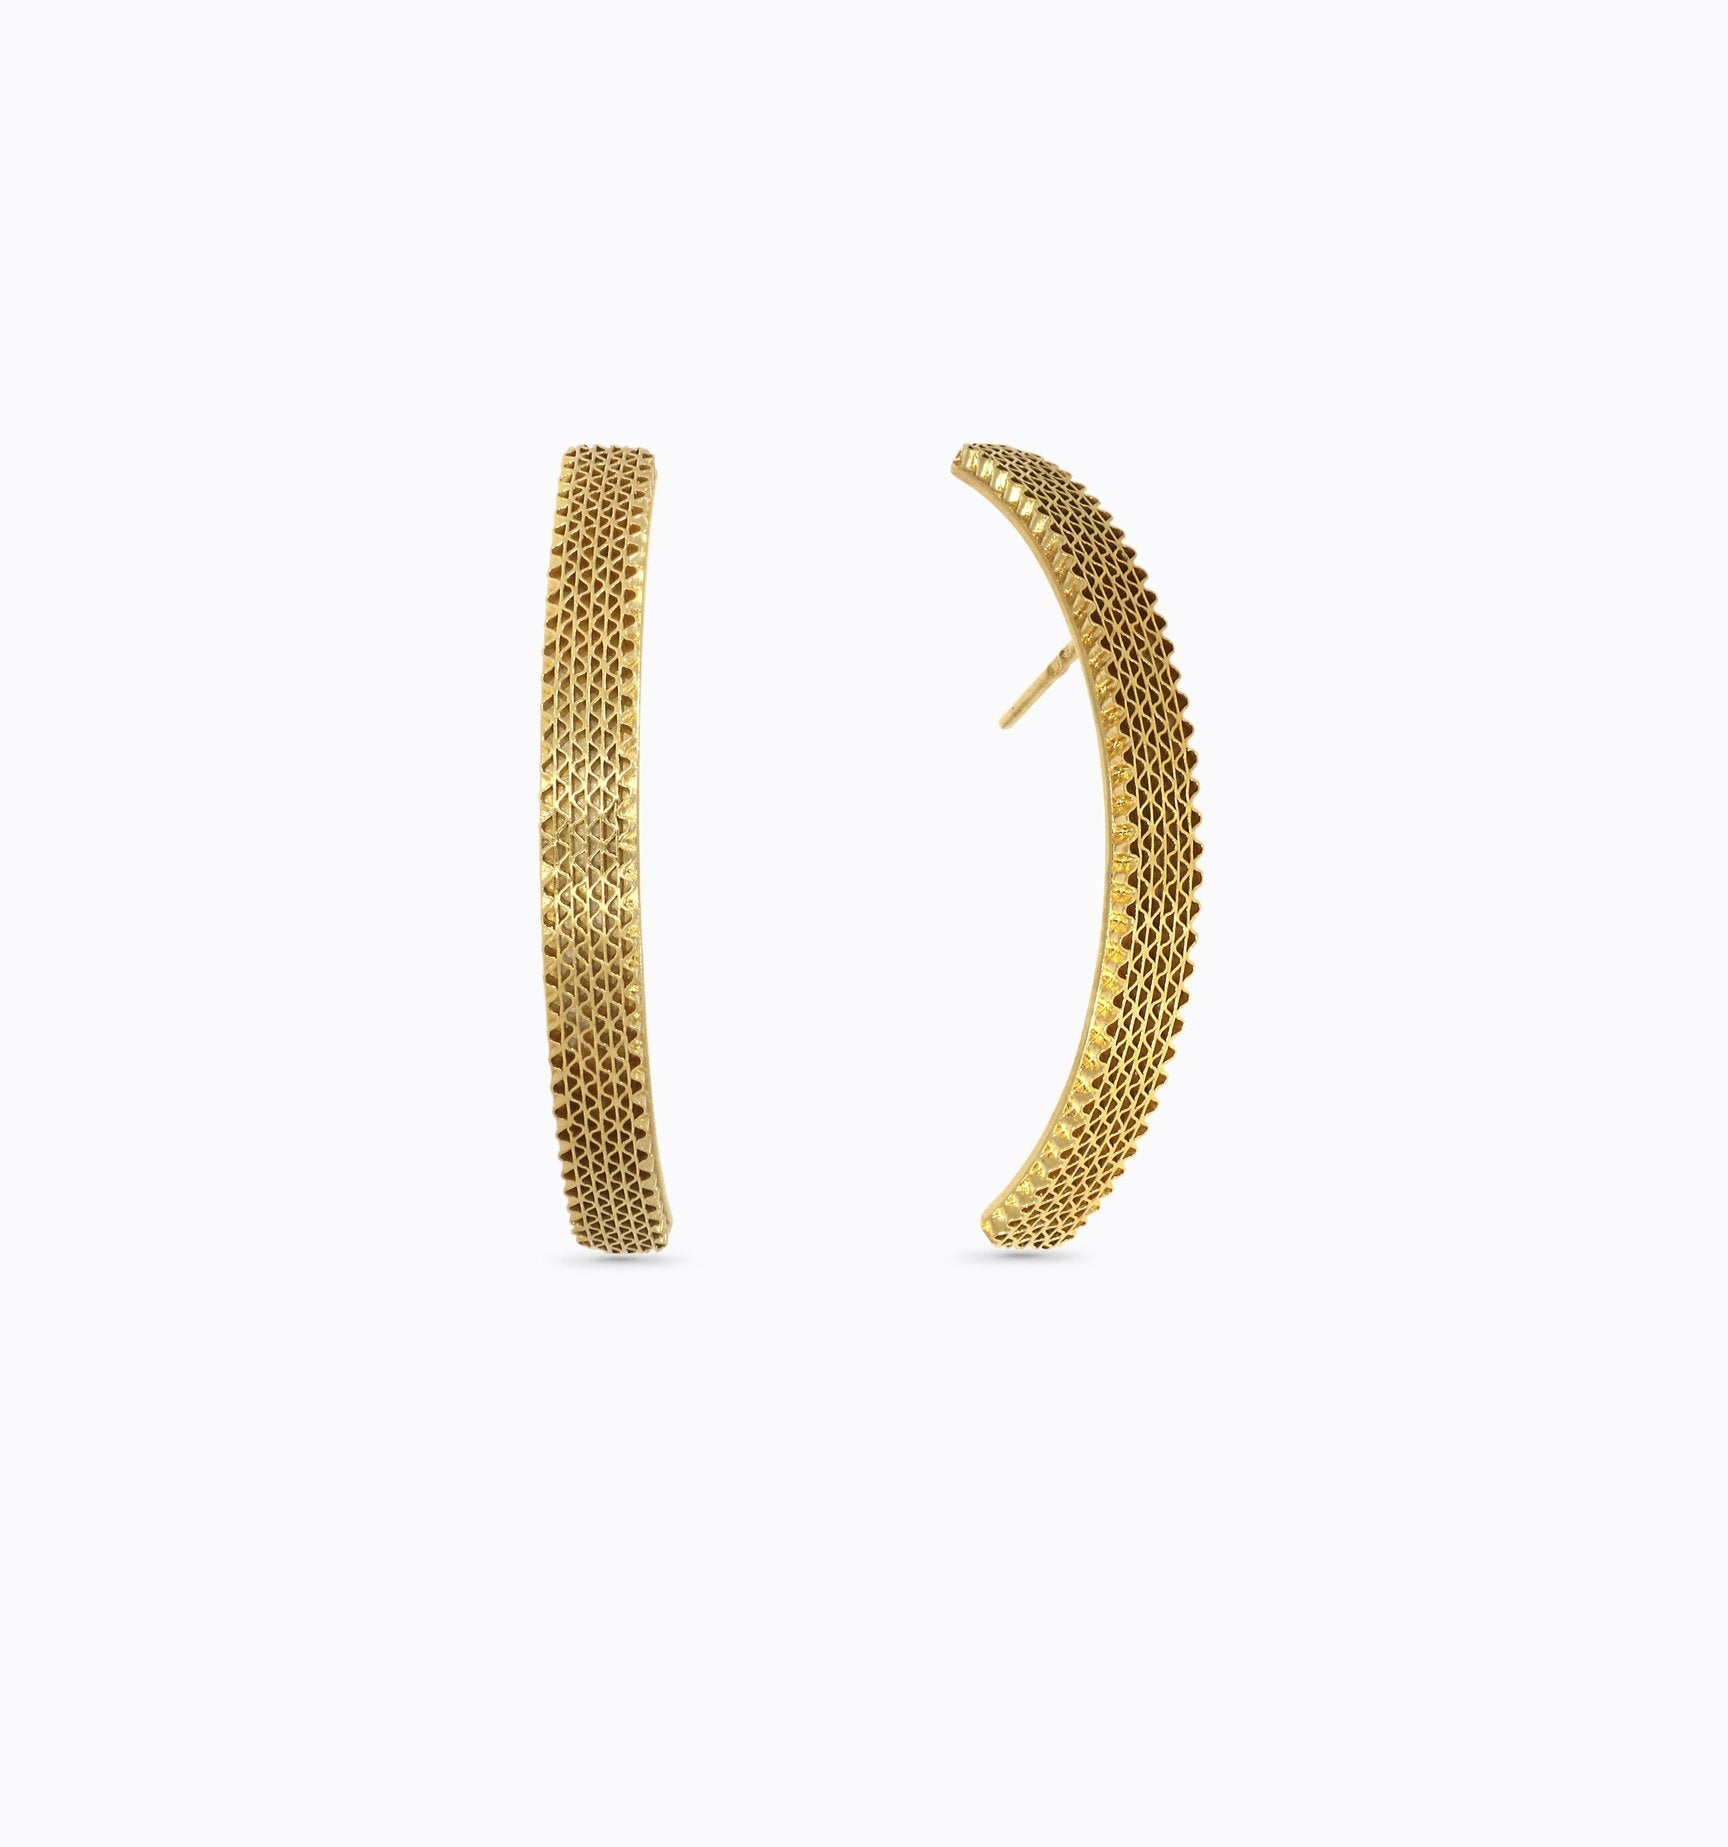 MESH gold pleated earrings liliana guerreiro